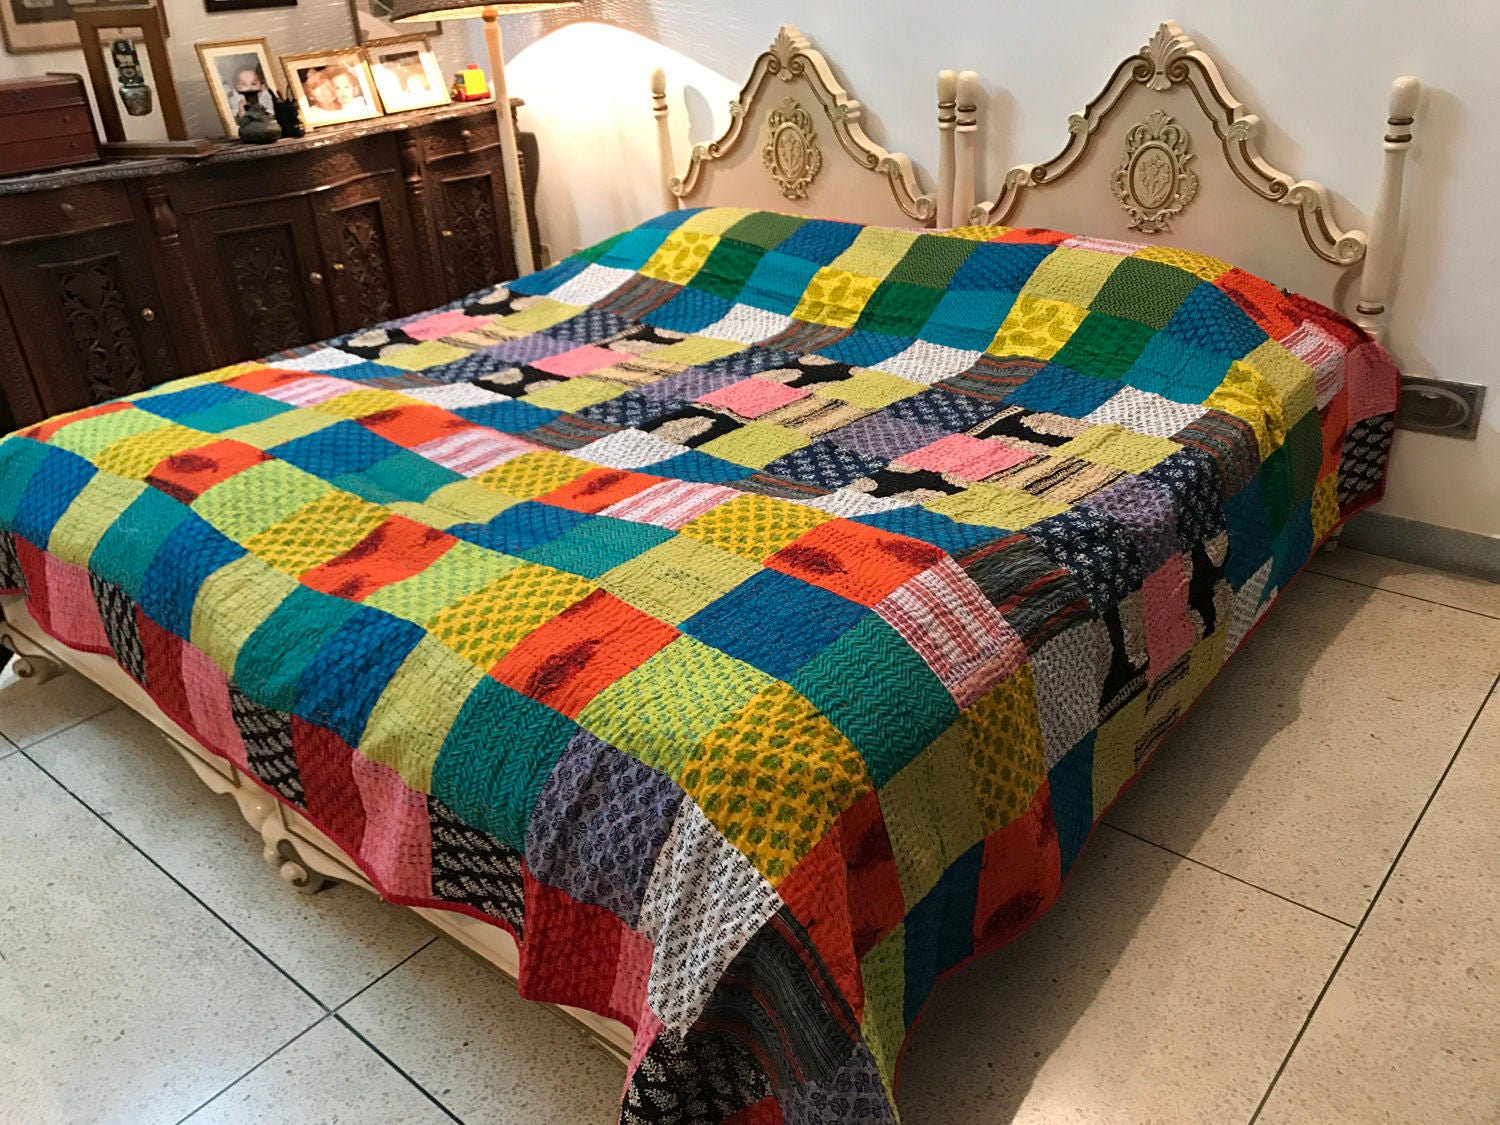 Cool Patchwork King Size Quilt 100% cotton-Reversible-Multipurpose ... : cool quilts for sale - Adamdwight.com